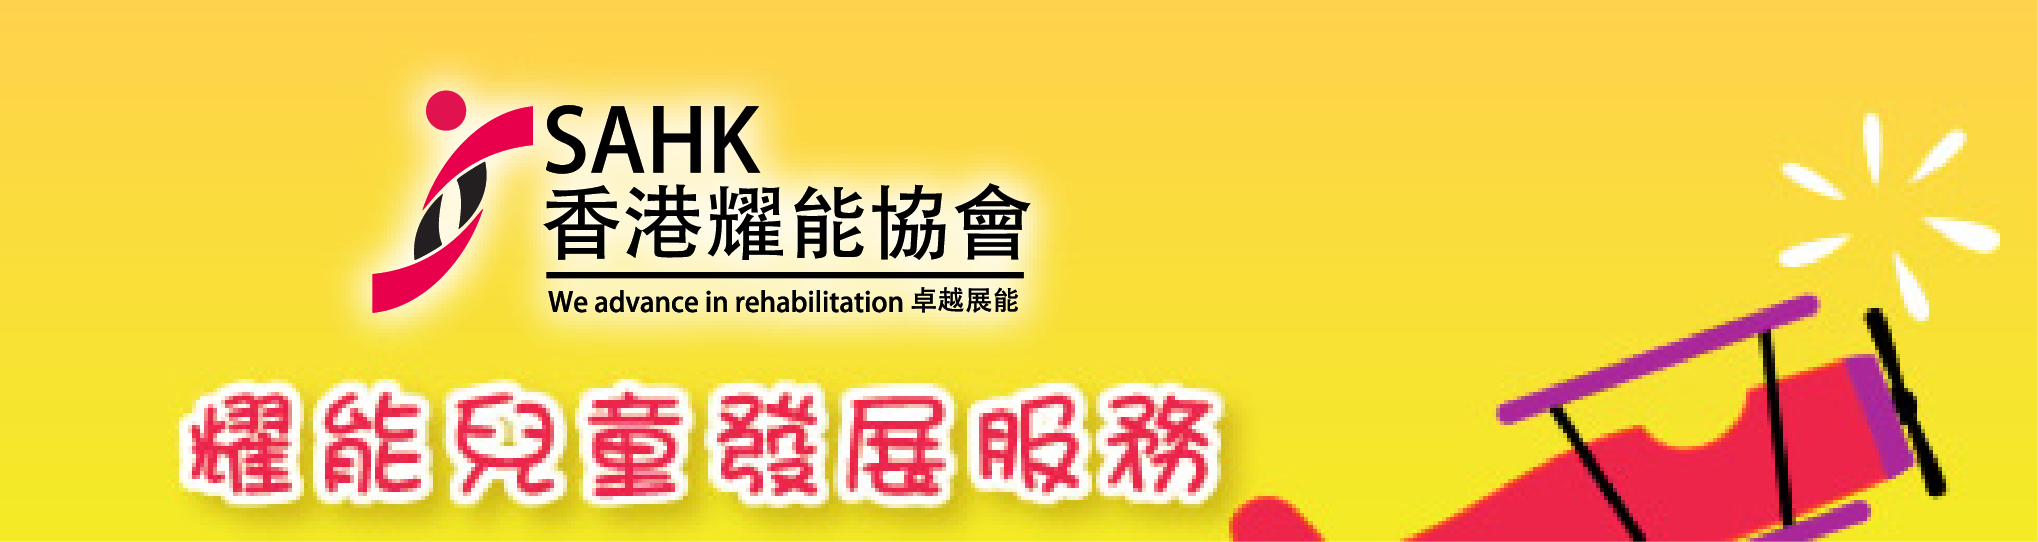 耀能兒童發展服務 Child Development Services